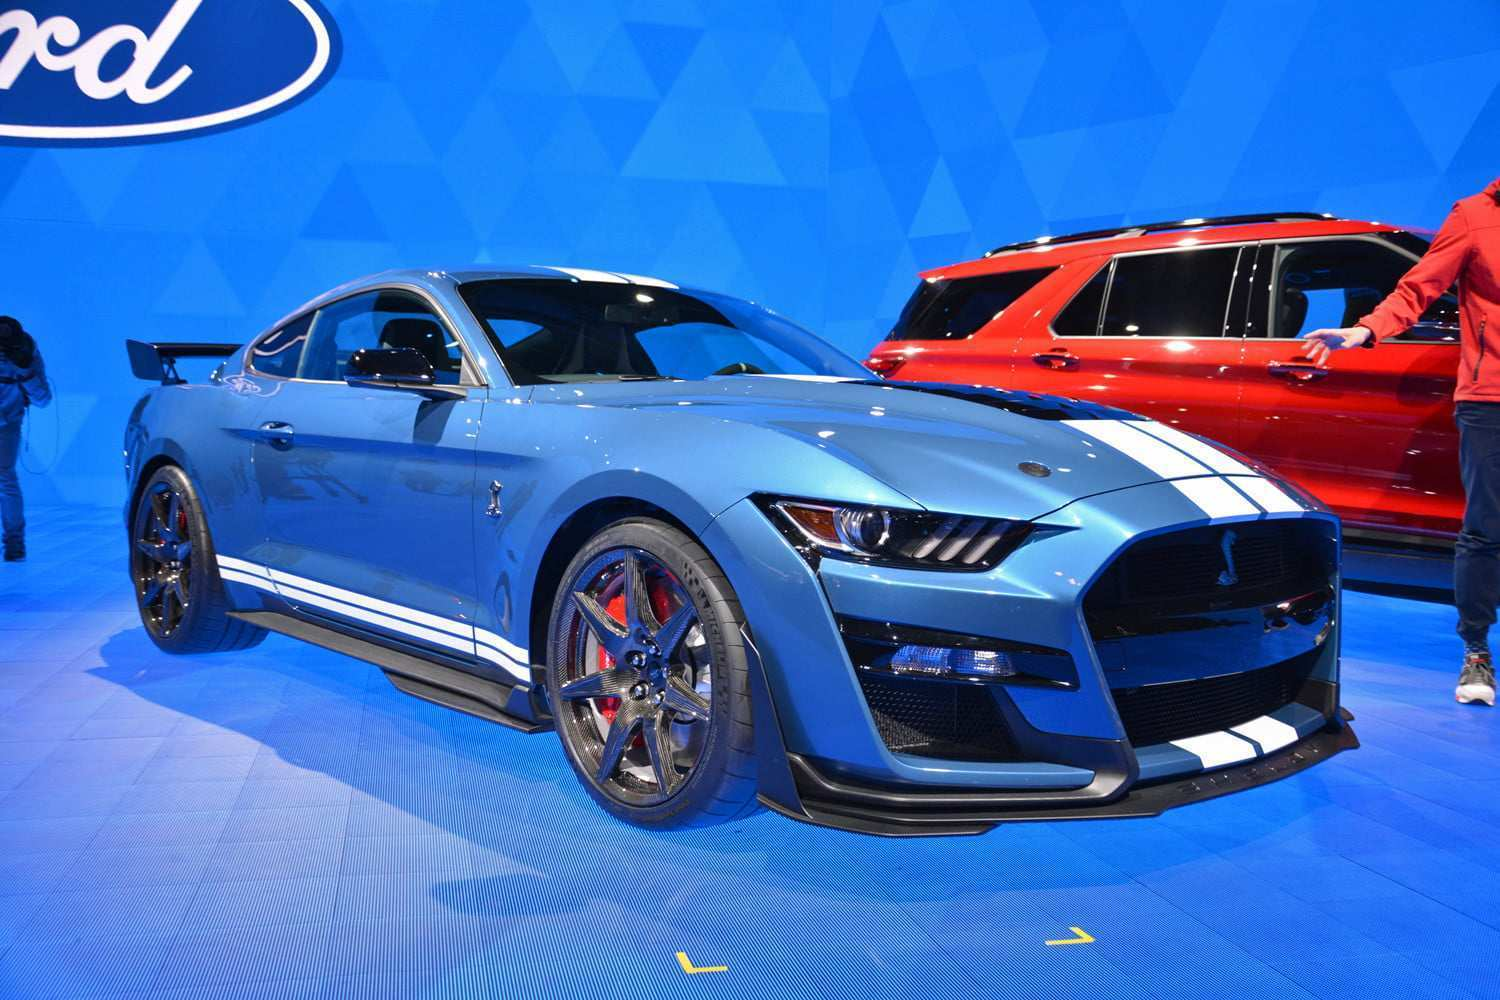 44 All New 2020 Ford Mustang Images New Review by 2020 Ford Mustang Images